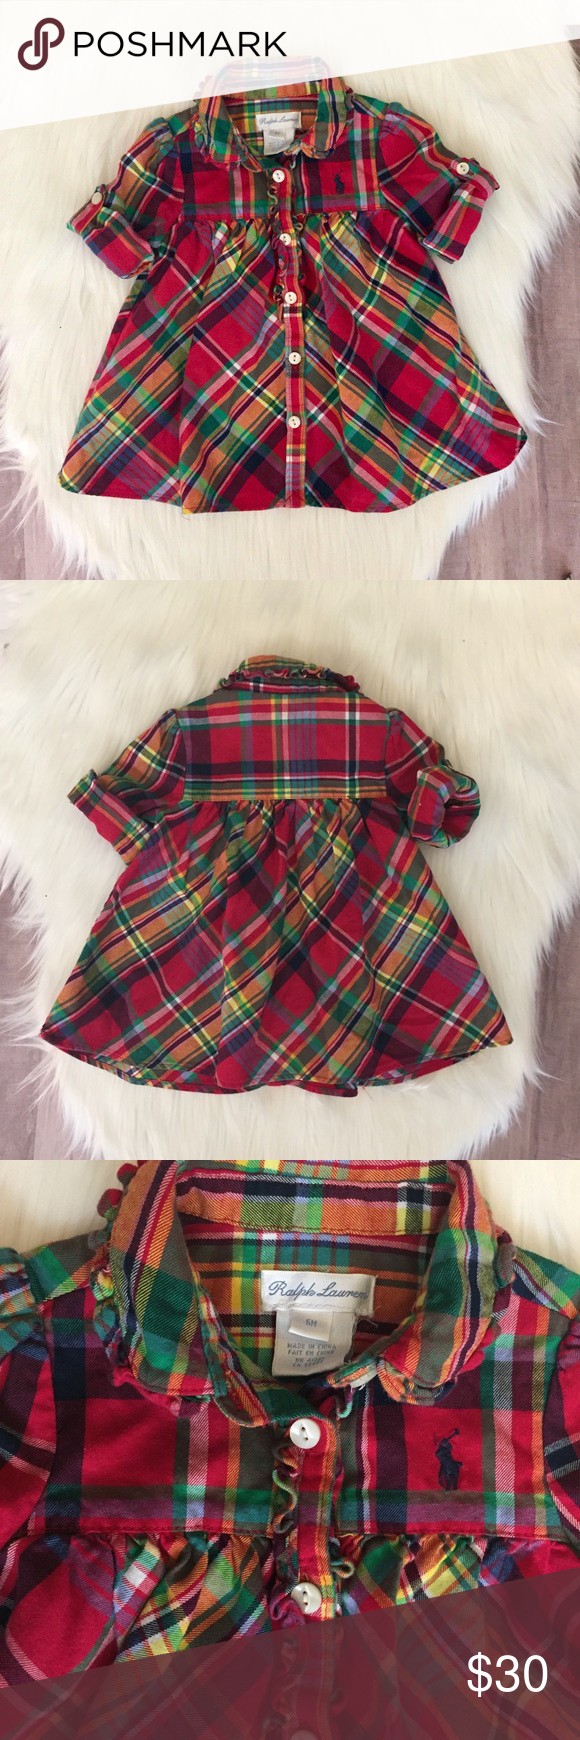 Ralph Lauren Baby Girl Plaid Dress Excellent like new condition, worn once. Adorable Ralph Lauren dress for baby girl. Buttons all the way down the front. Sleeves can be rolled up and secured with a buttoned strap or left down. Cute ruffled detail around collar and buttons. So cute 💕💕💕 Ralph Lauren Dresses